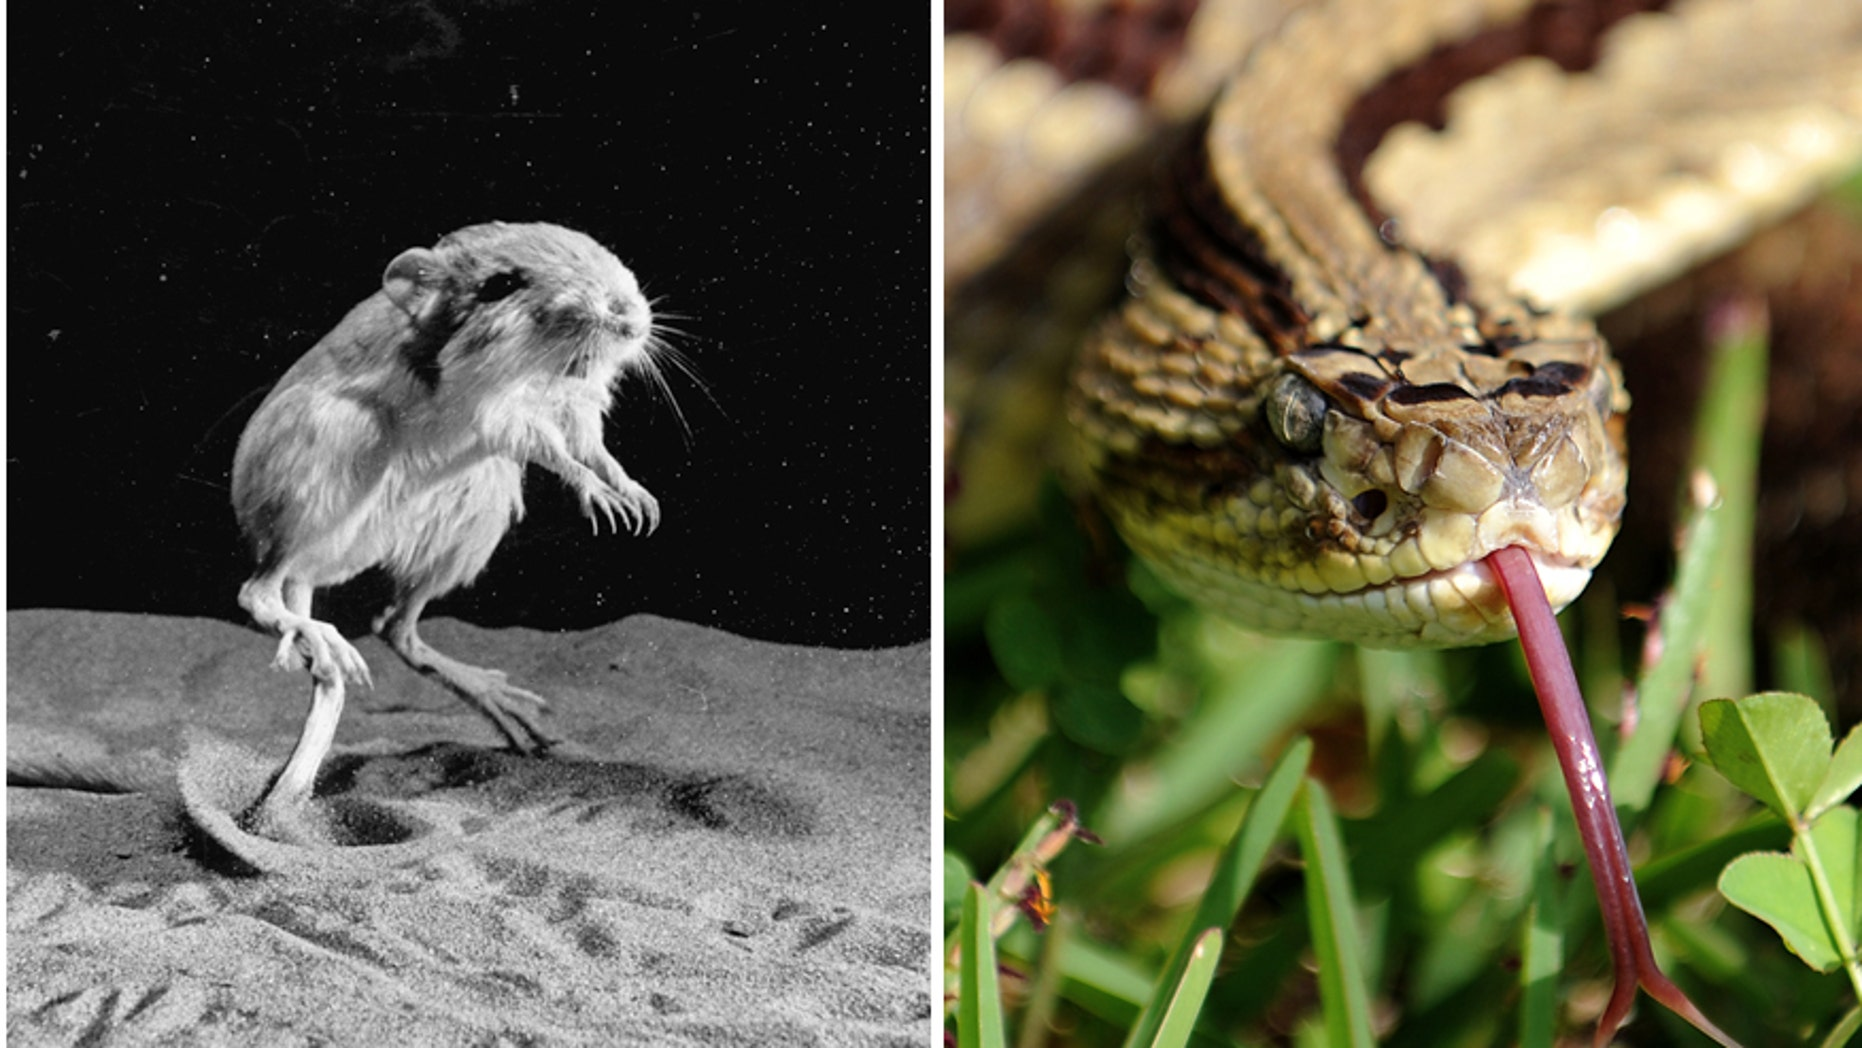 Kangaroo Rat Caught On Tape Confounding Rattlesnake With Ninja-Like Moves